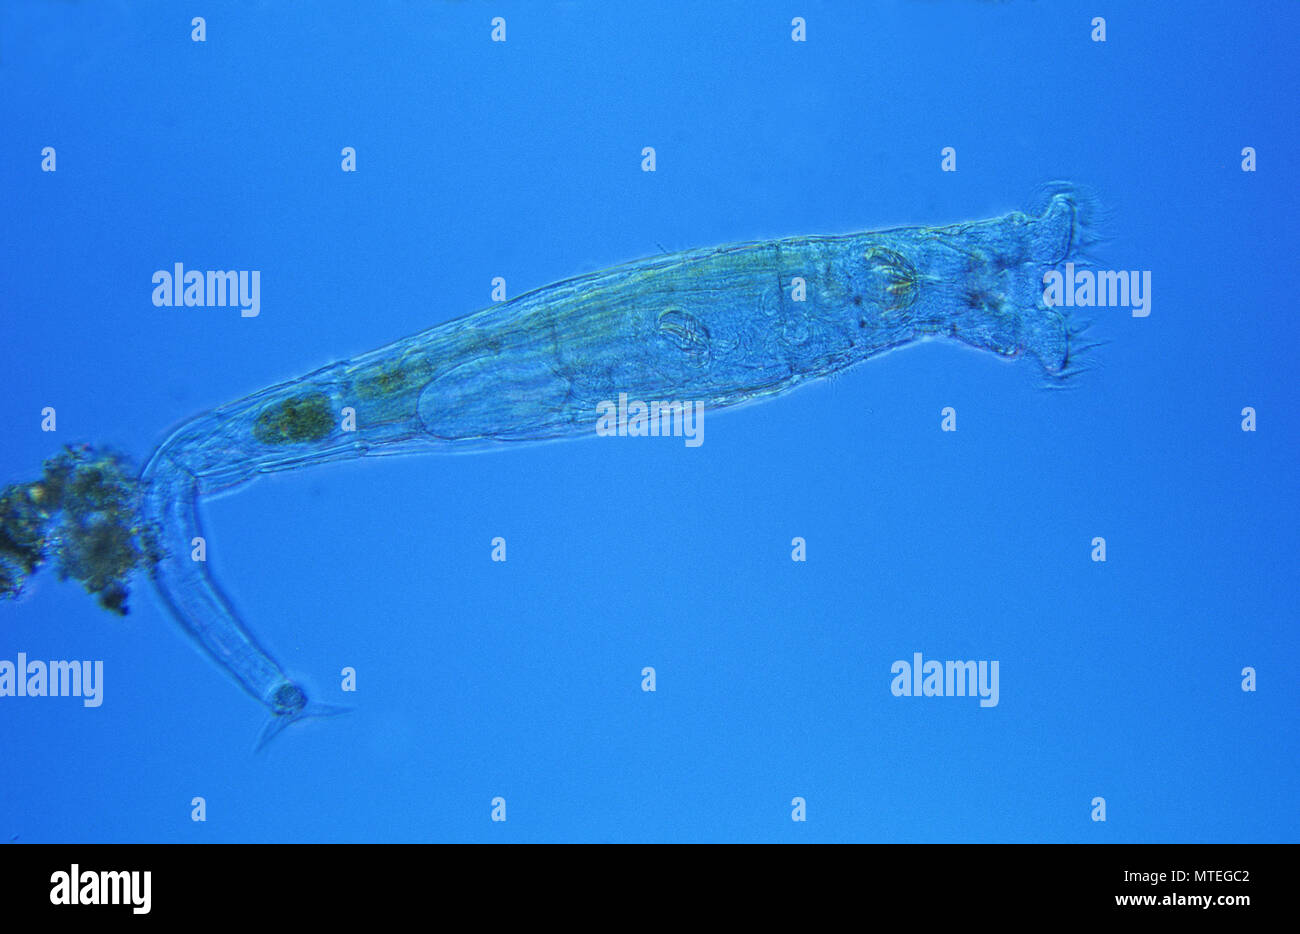 Philodina.Rotifera.Optic microscopy - Stock Image